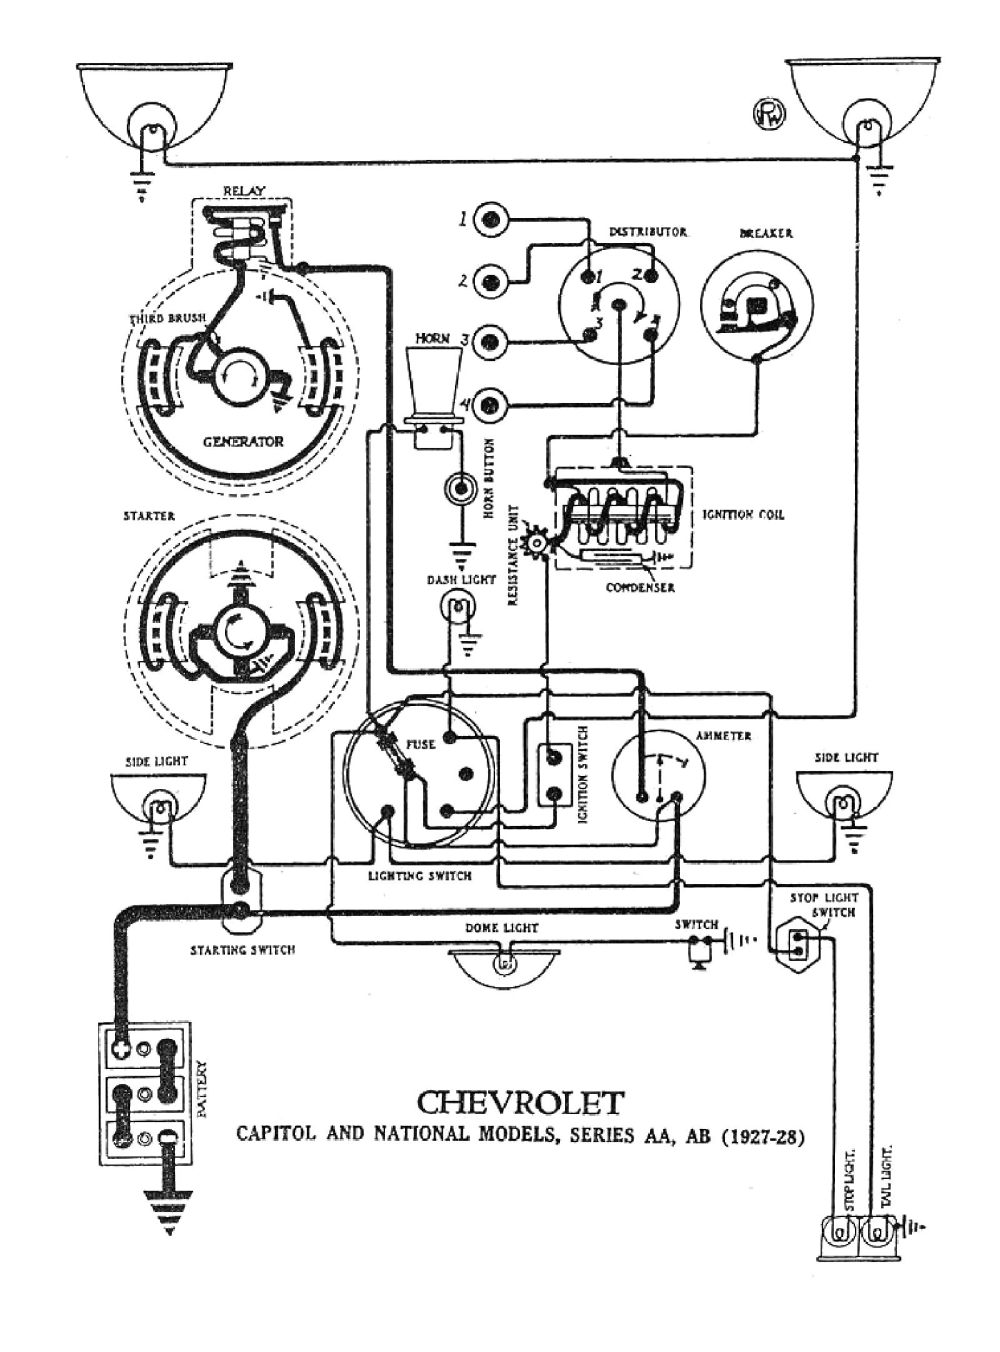 medium resolution of 1950 ford ignition coil wiring detailed schematics diagram rh mrskindsclass com 1700 ford tractor wiring diagram